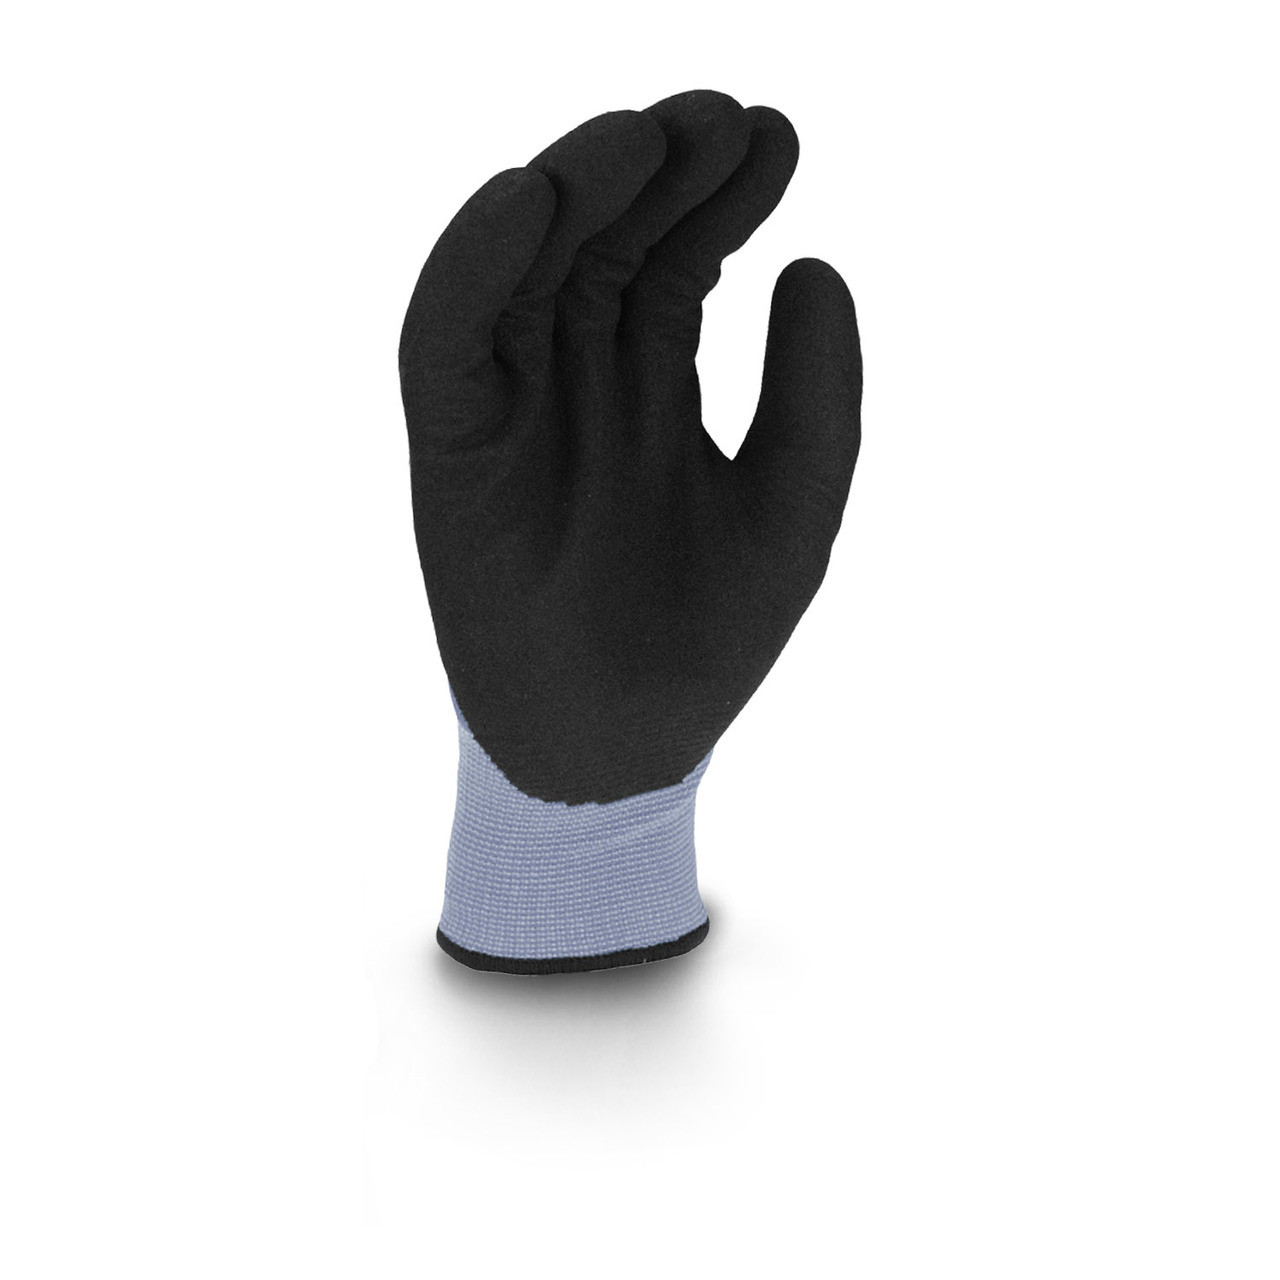 RWG605 Cold Weather Cut Protection Glove